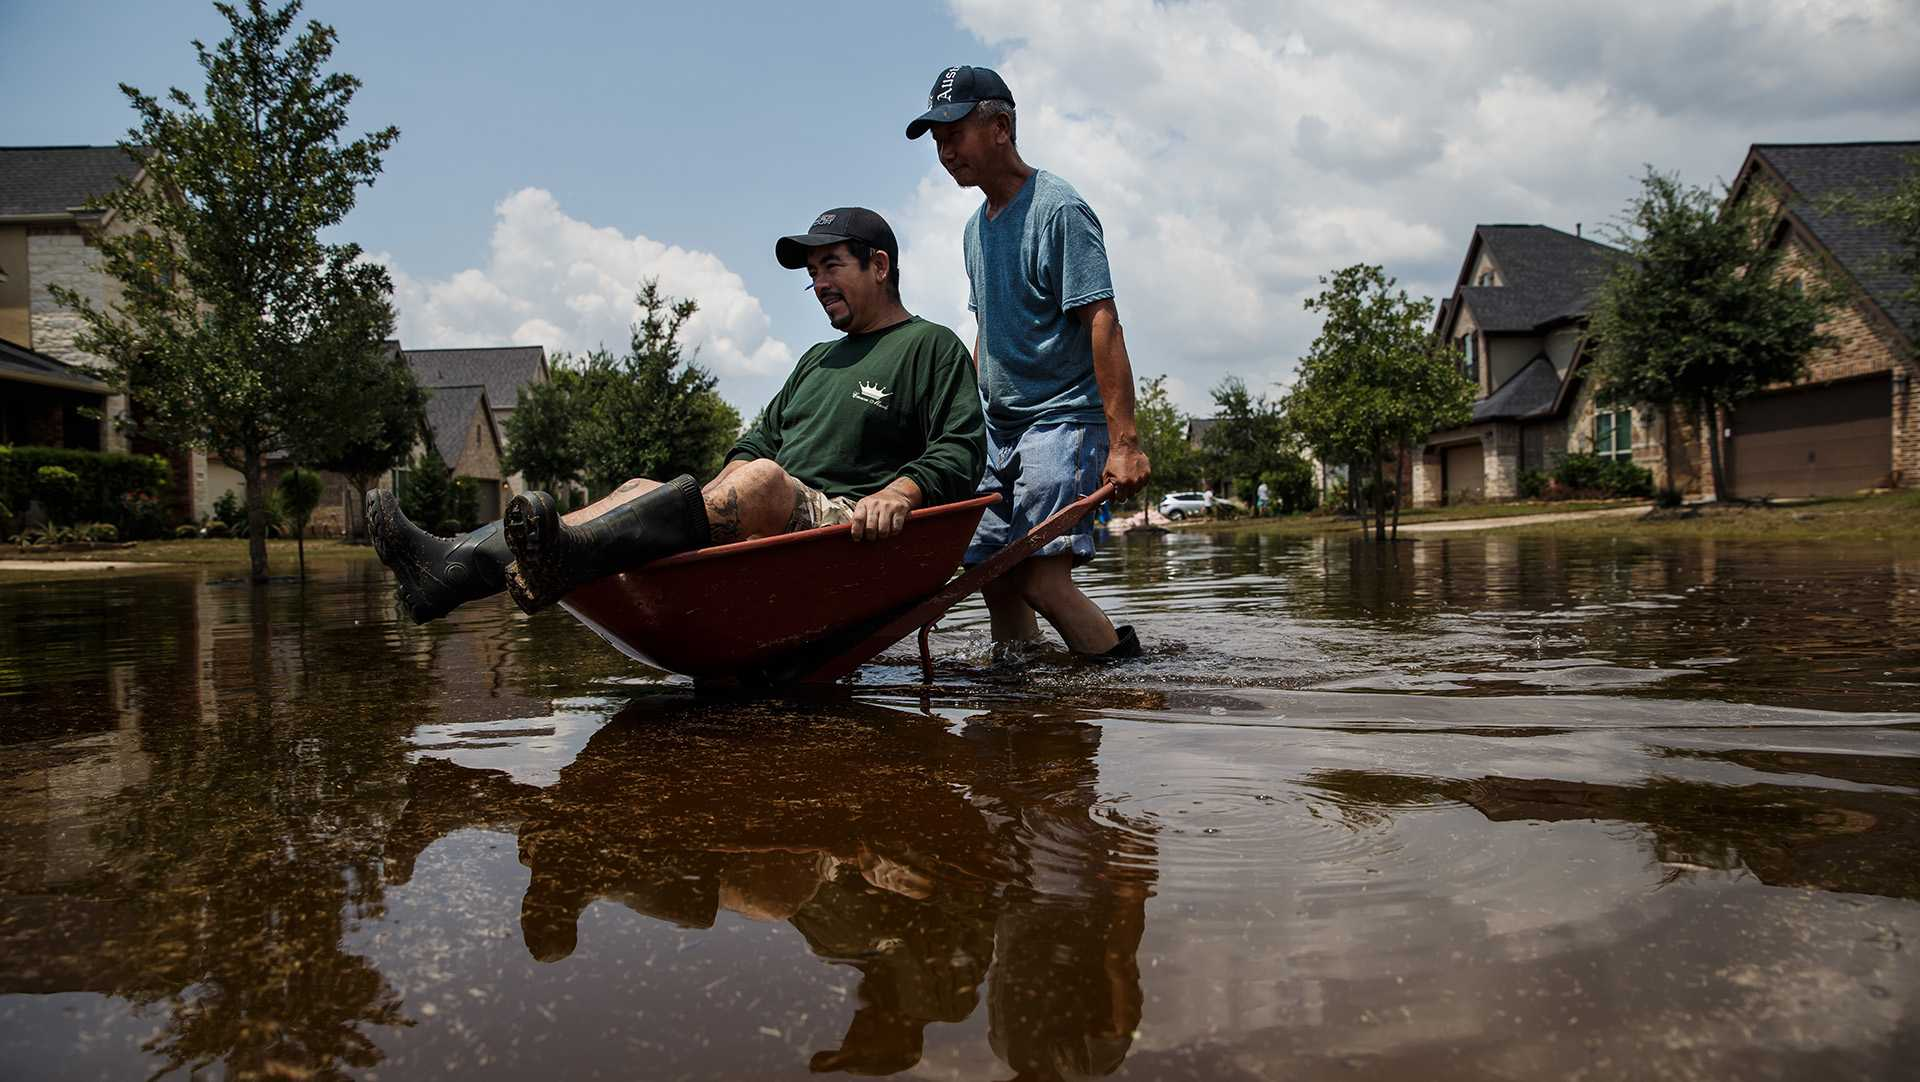 Lung Hui Chen pushes Manuel Terrazas in a wheelbarrow across flooded streets as local residents clear out damaged homes in the aftermath of Hurricane Harvey, in the Millwood subdivision of Fort Bend County, Texas, on Saturday, Sept. 2, 2017. (Marcus Yam/Los Angeles Times/TNS)